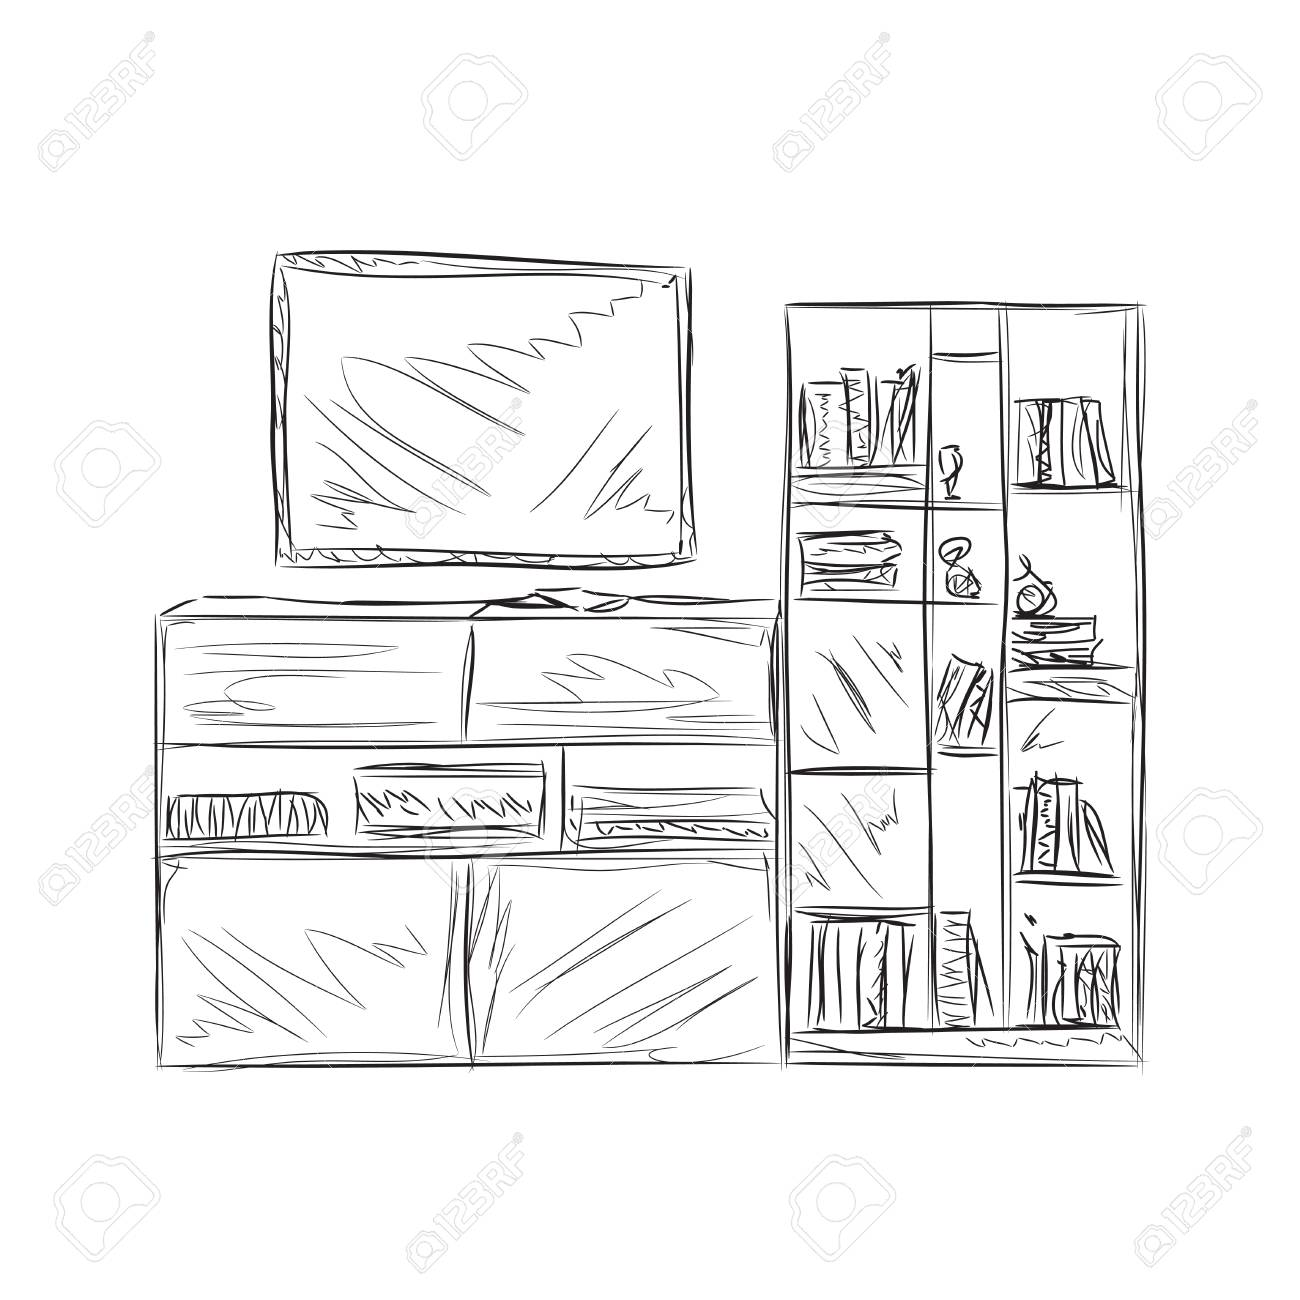 Hand Drawn Bookshelf Furniture Sketch Room Interior Stock Vector